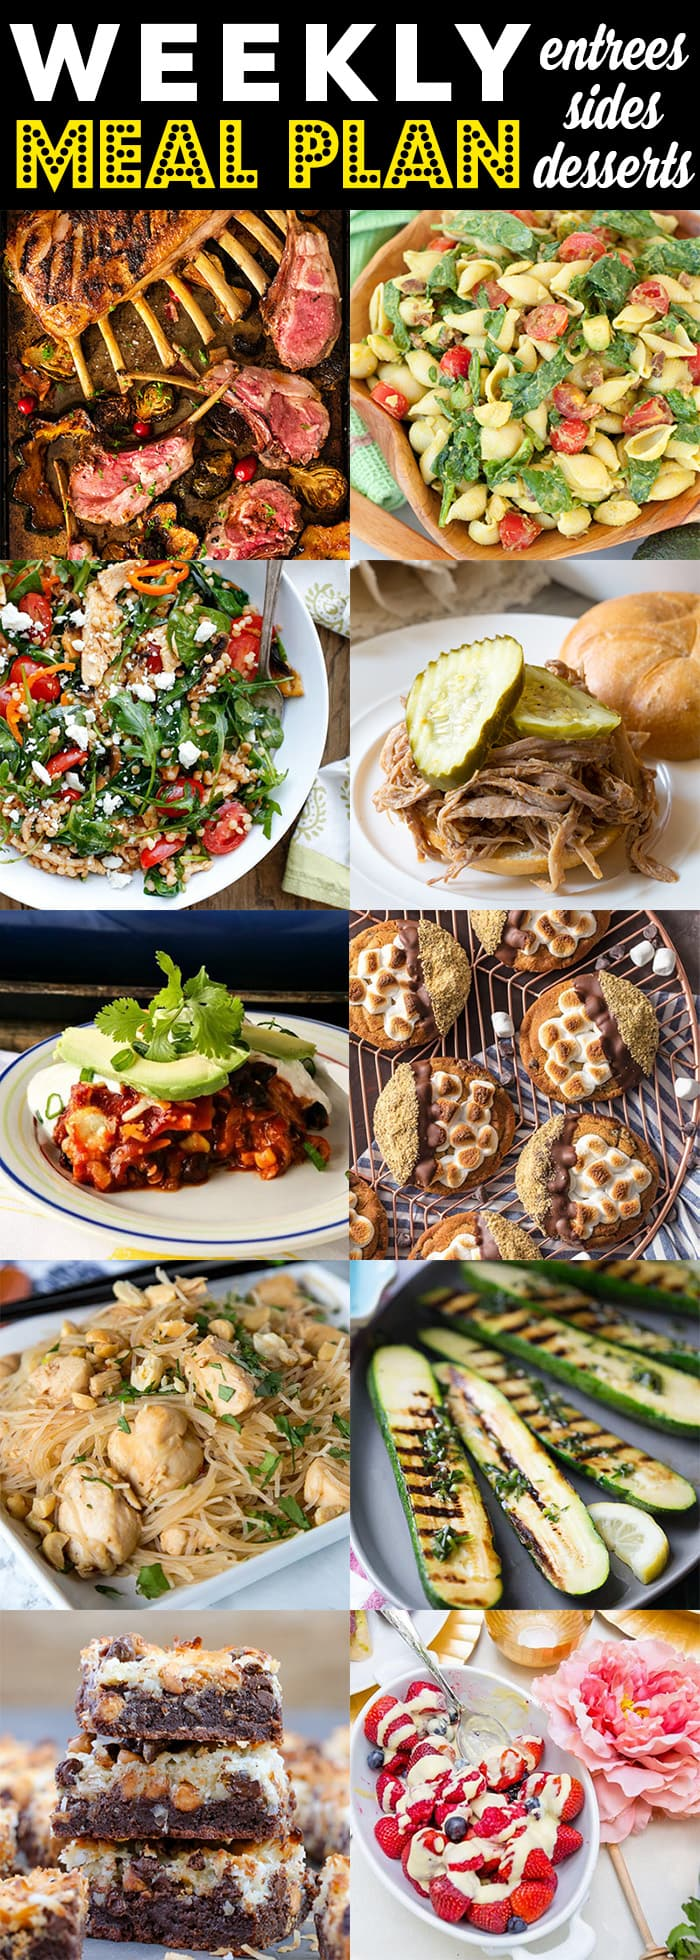 A collage of different meals